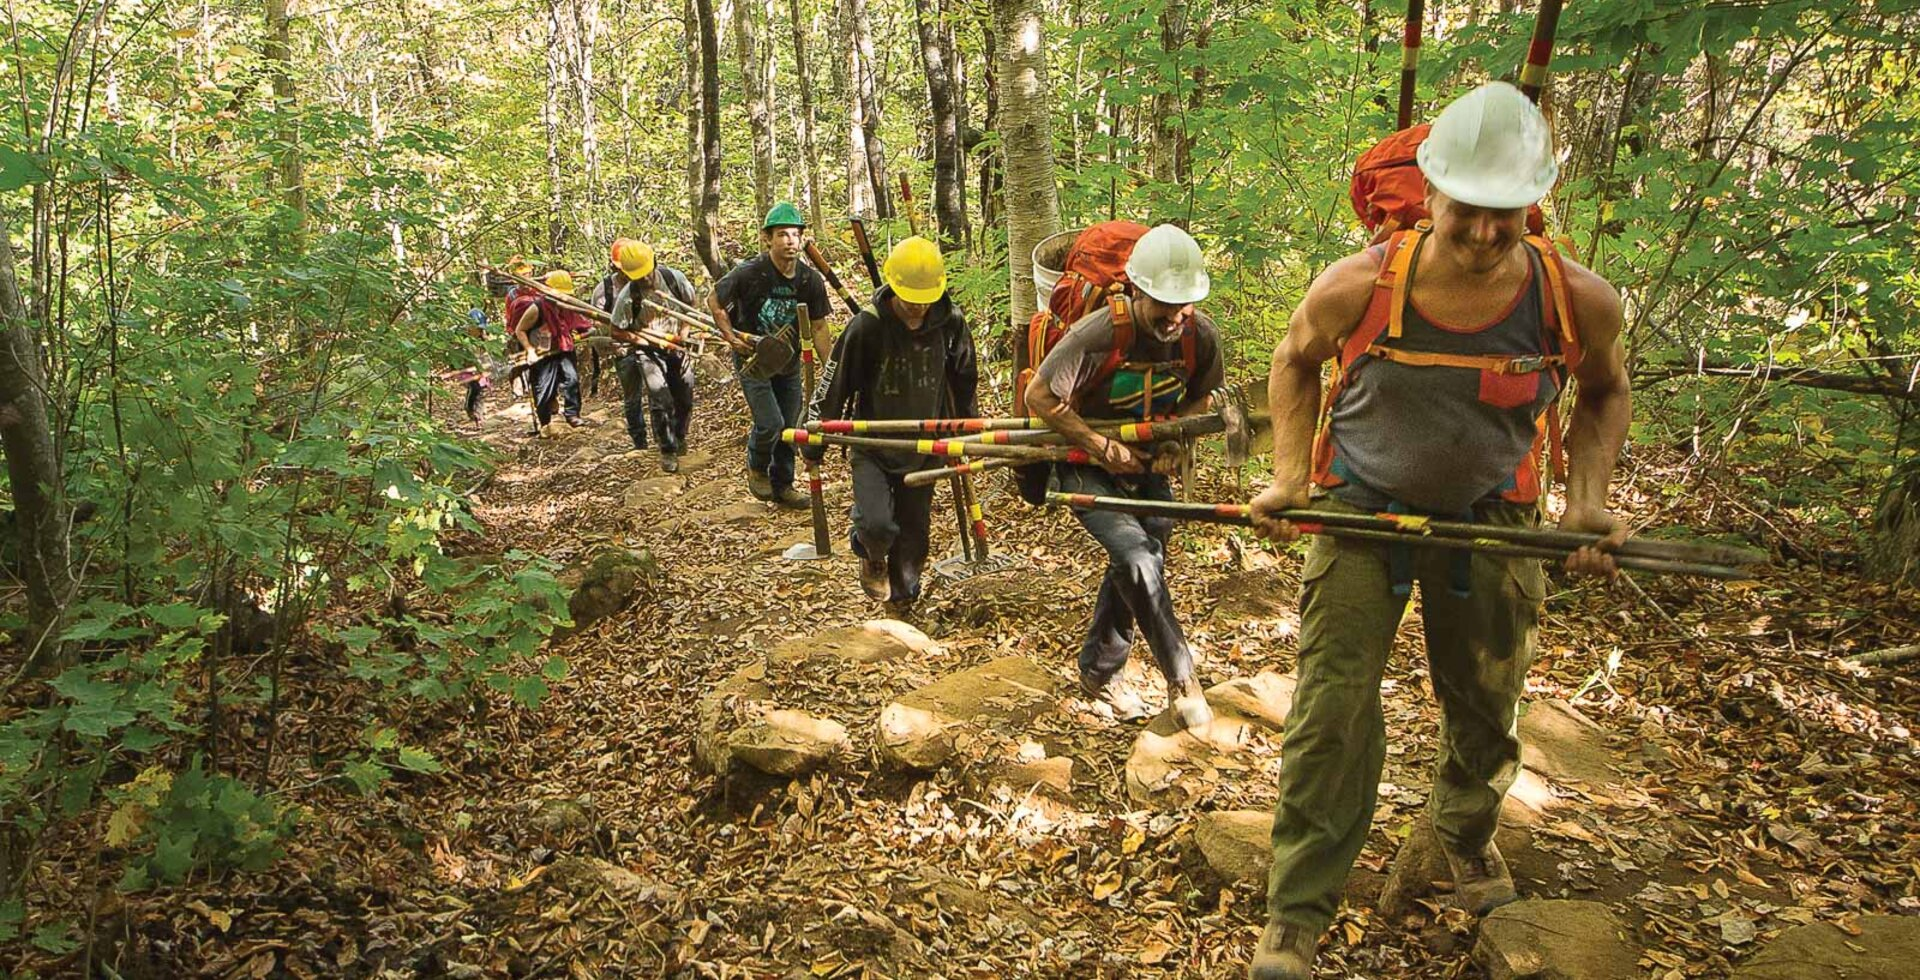 Through trailbuilding, Projet Jeunesse helps young adults overcome the troubles of their past while teaching them valuable skills and providing meaningful work. More than 200 participants have taken part since its inception in 2002, many of whom return to school or work after completing the six-month program. Photo: Claude Côté